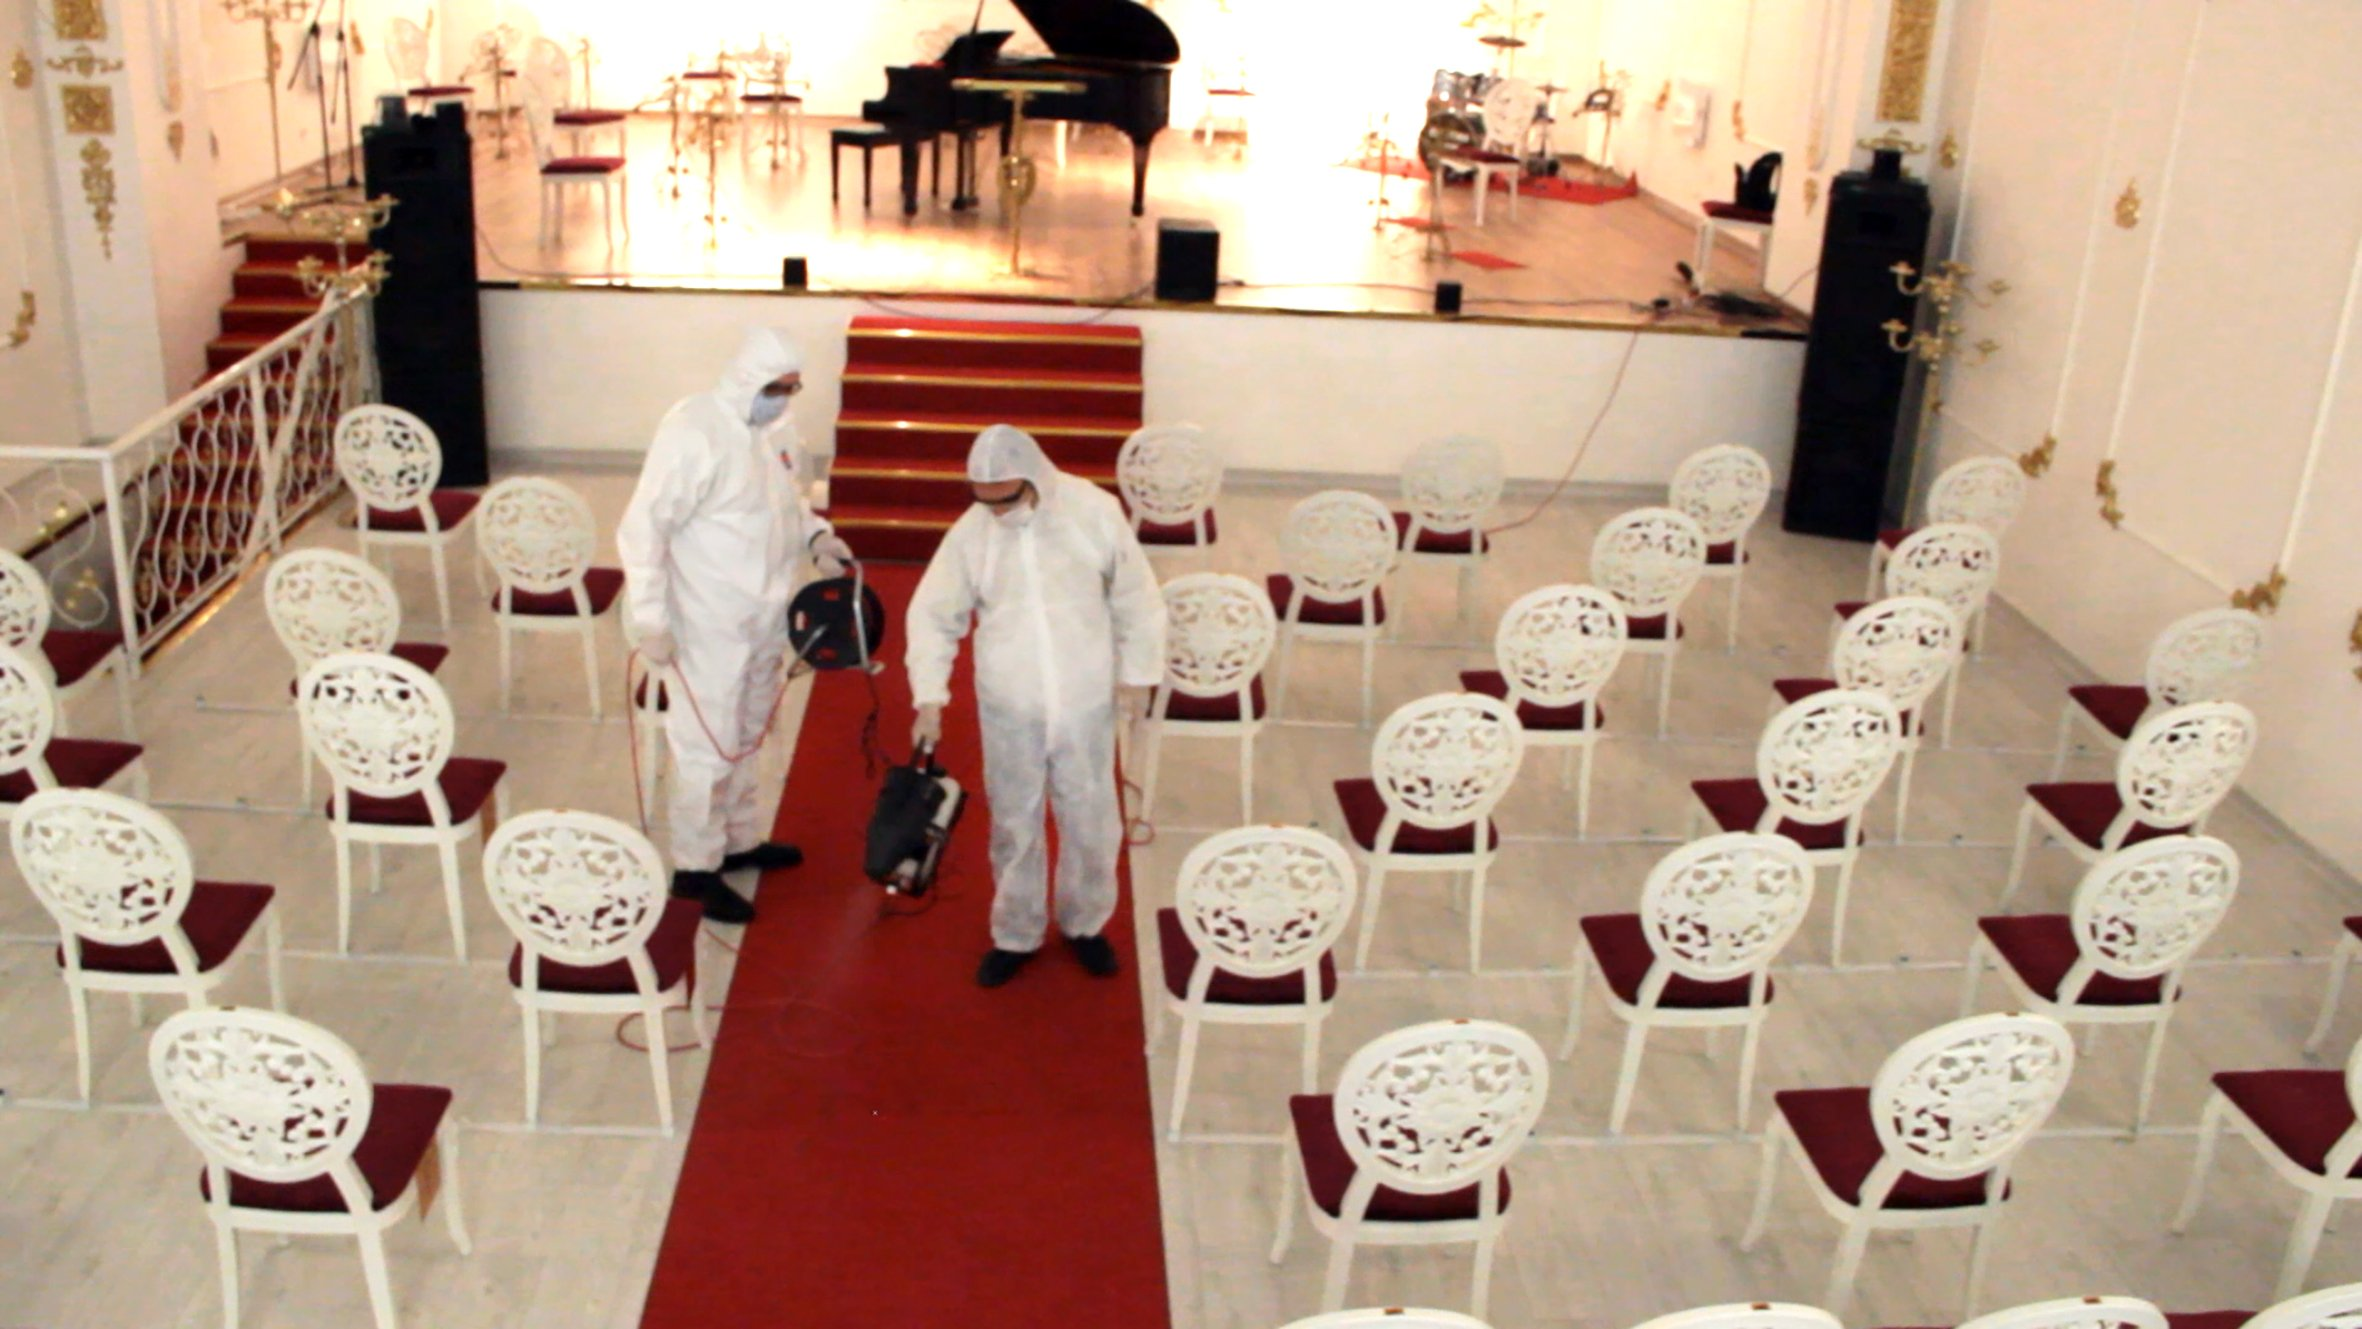 The seats of the concert hall were reduced from 350 to 100, Ankara, Turkey. (AA Photo)